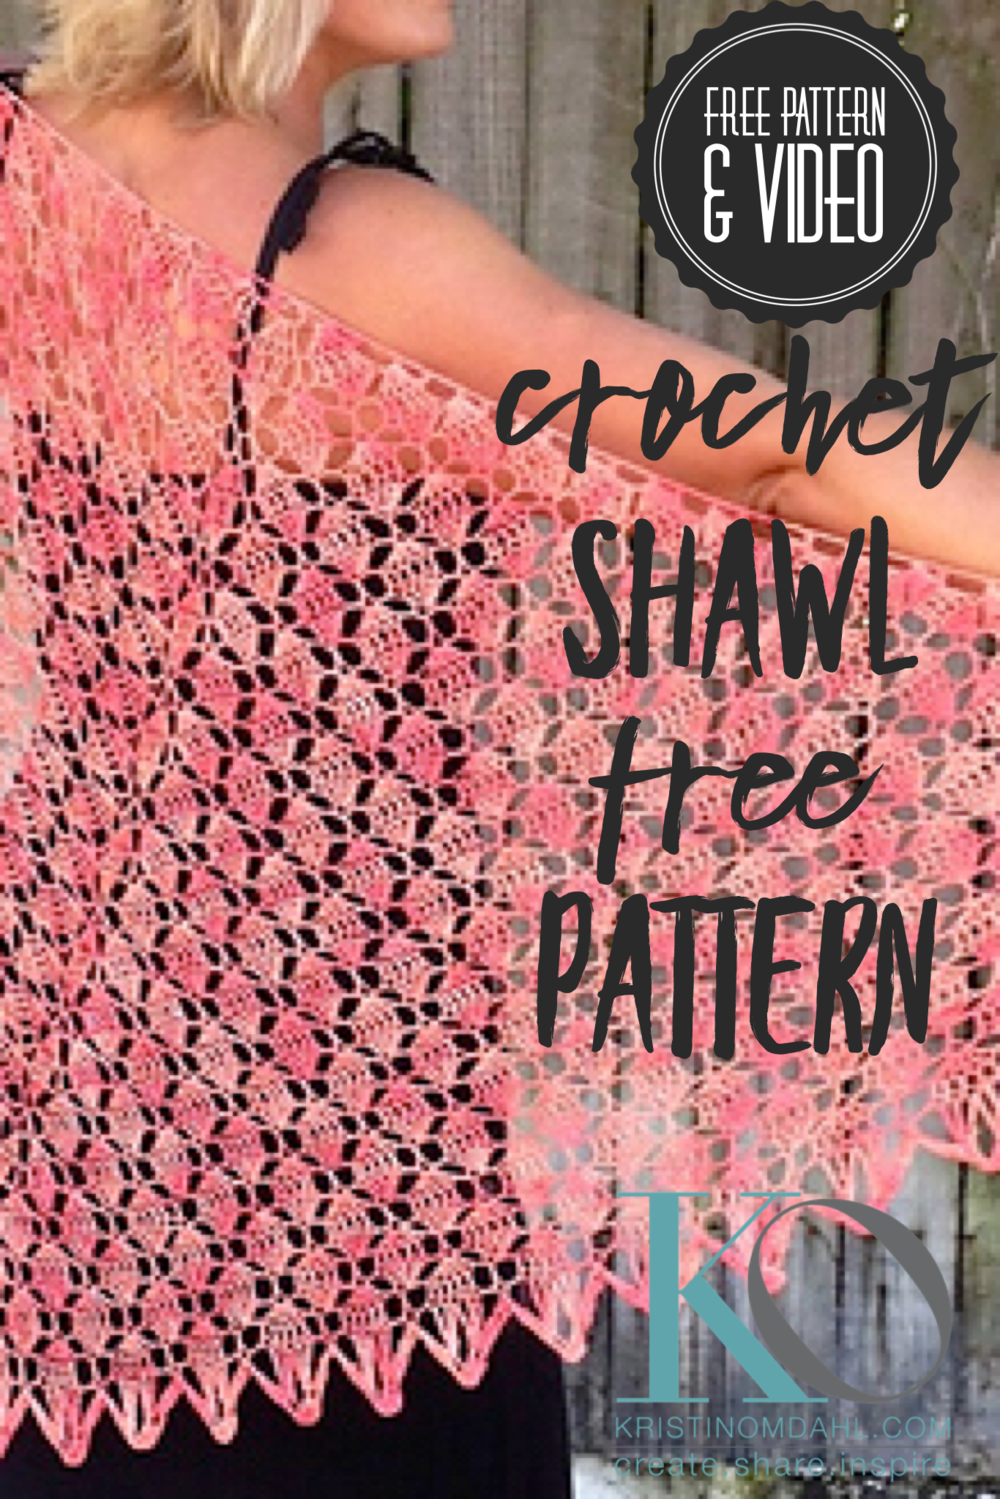 Key West Coral Crochet Lace Shawl Free Pattern Kristin Omdahl